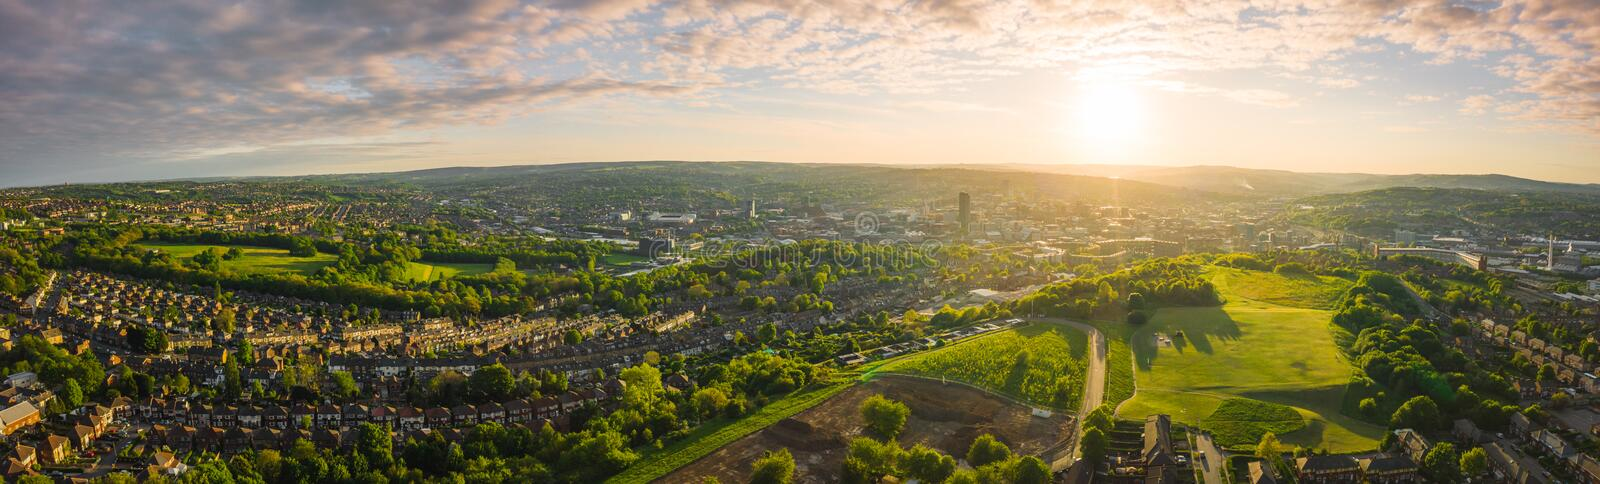 12k Aerial Panorama of Sheffield City at Sunset stock image